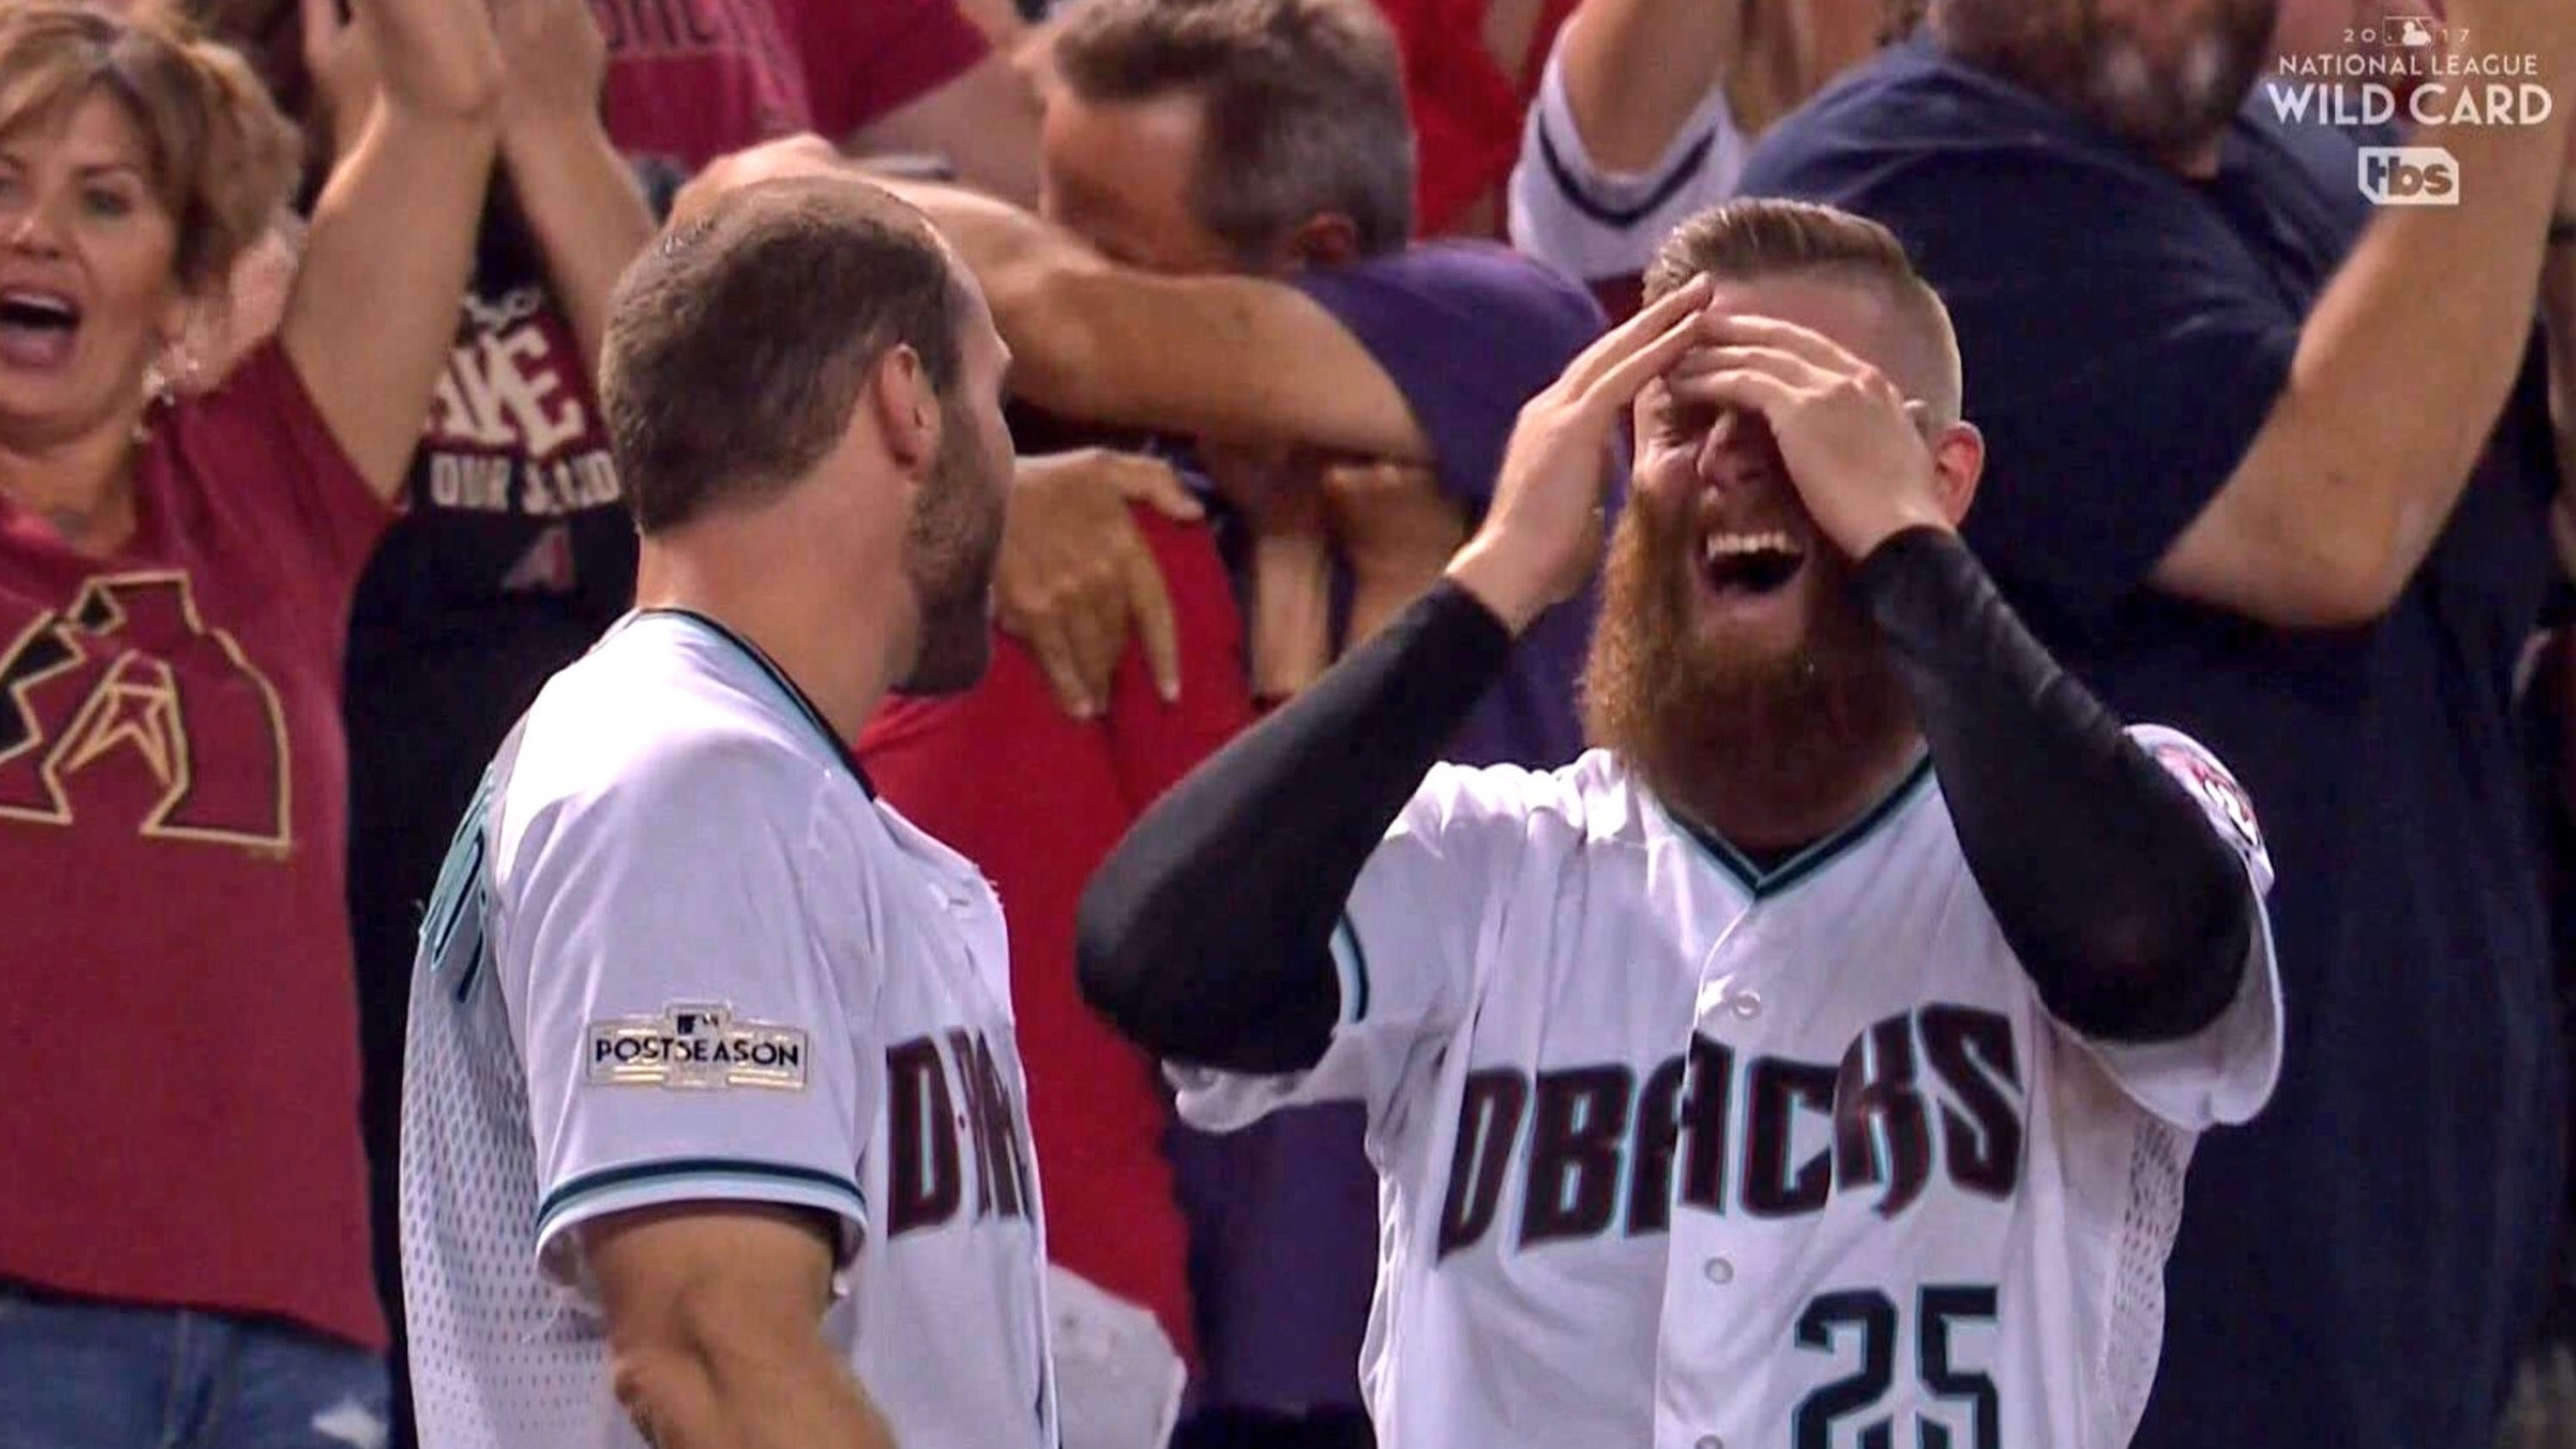 chicago.suntimes.com Archie Bradley had the perfect reaction to win  rssfeeds.usatoday.com Diamondbacks beat ... d4c1daa20